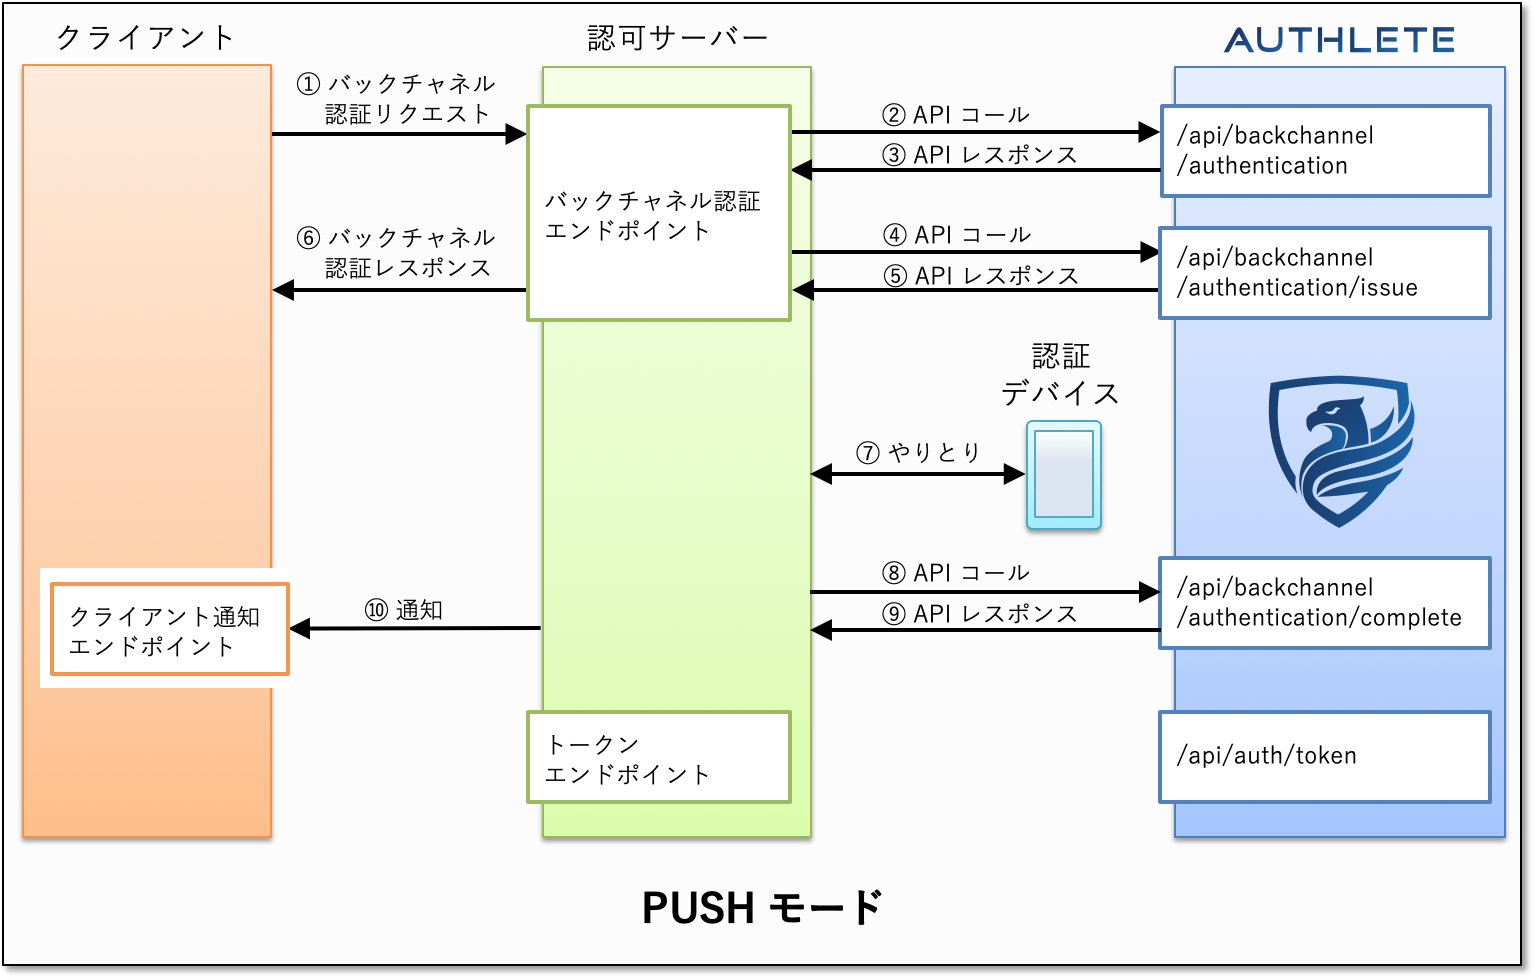 ciba-push-mode-authlete.png